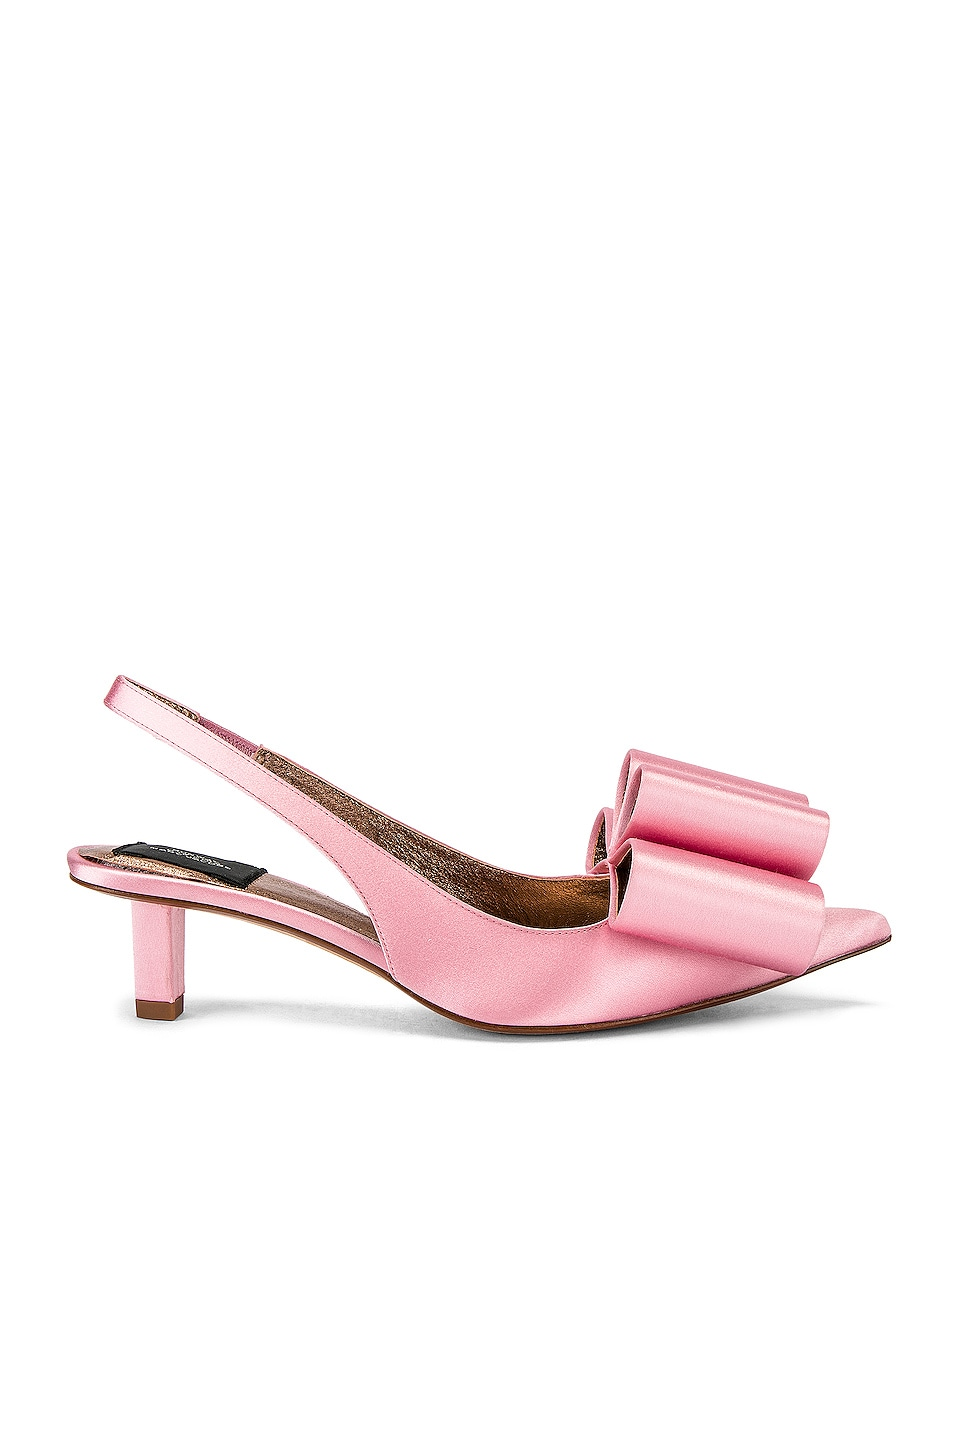 Marc Jacobs Bow Slingback Pump in Pink